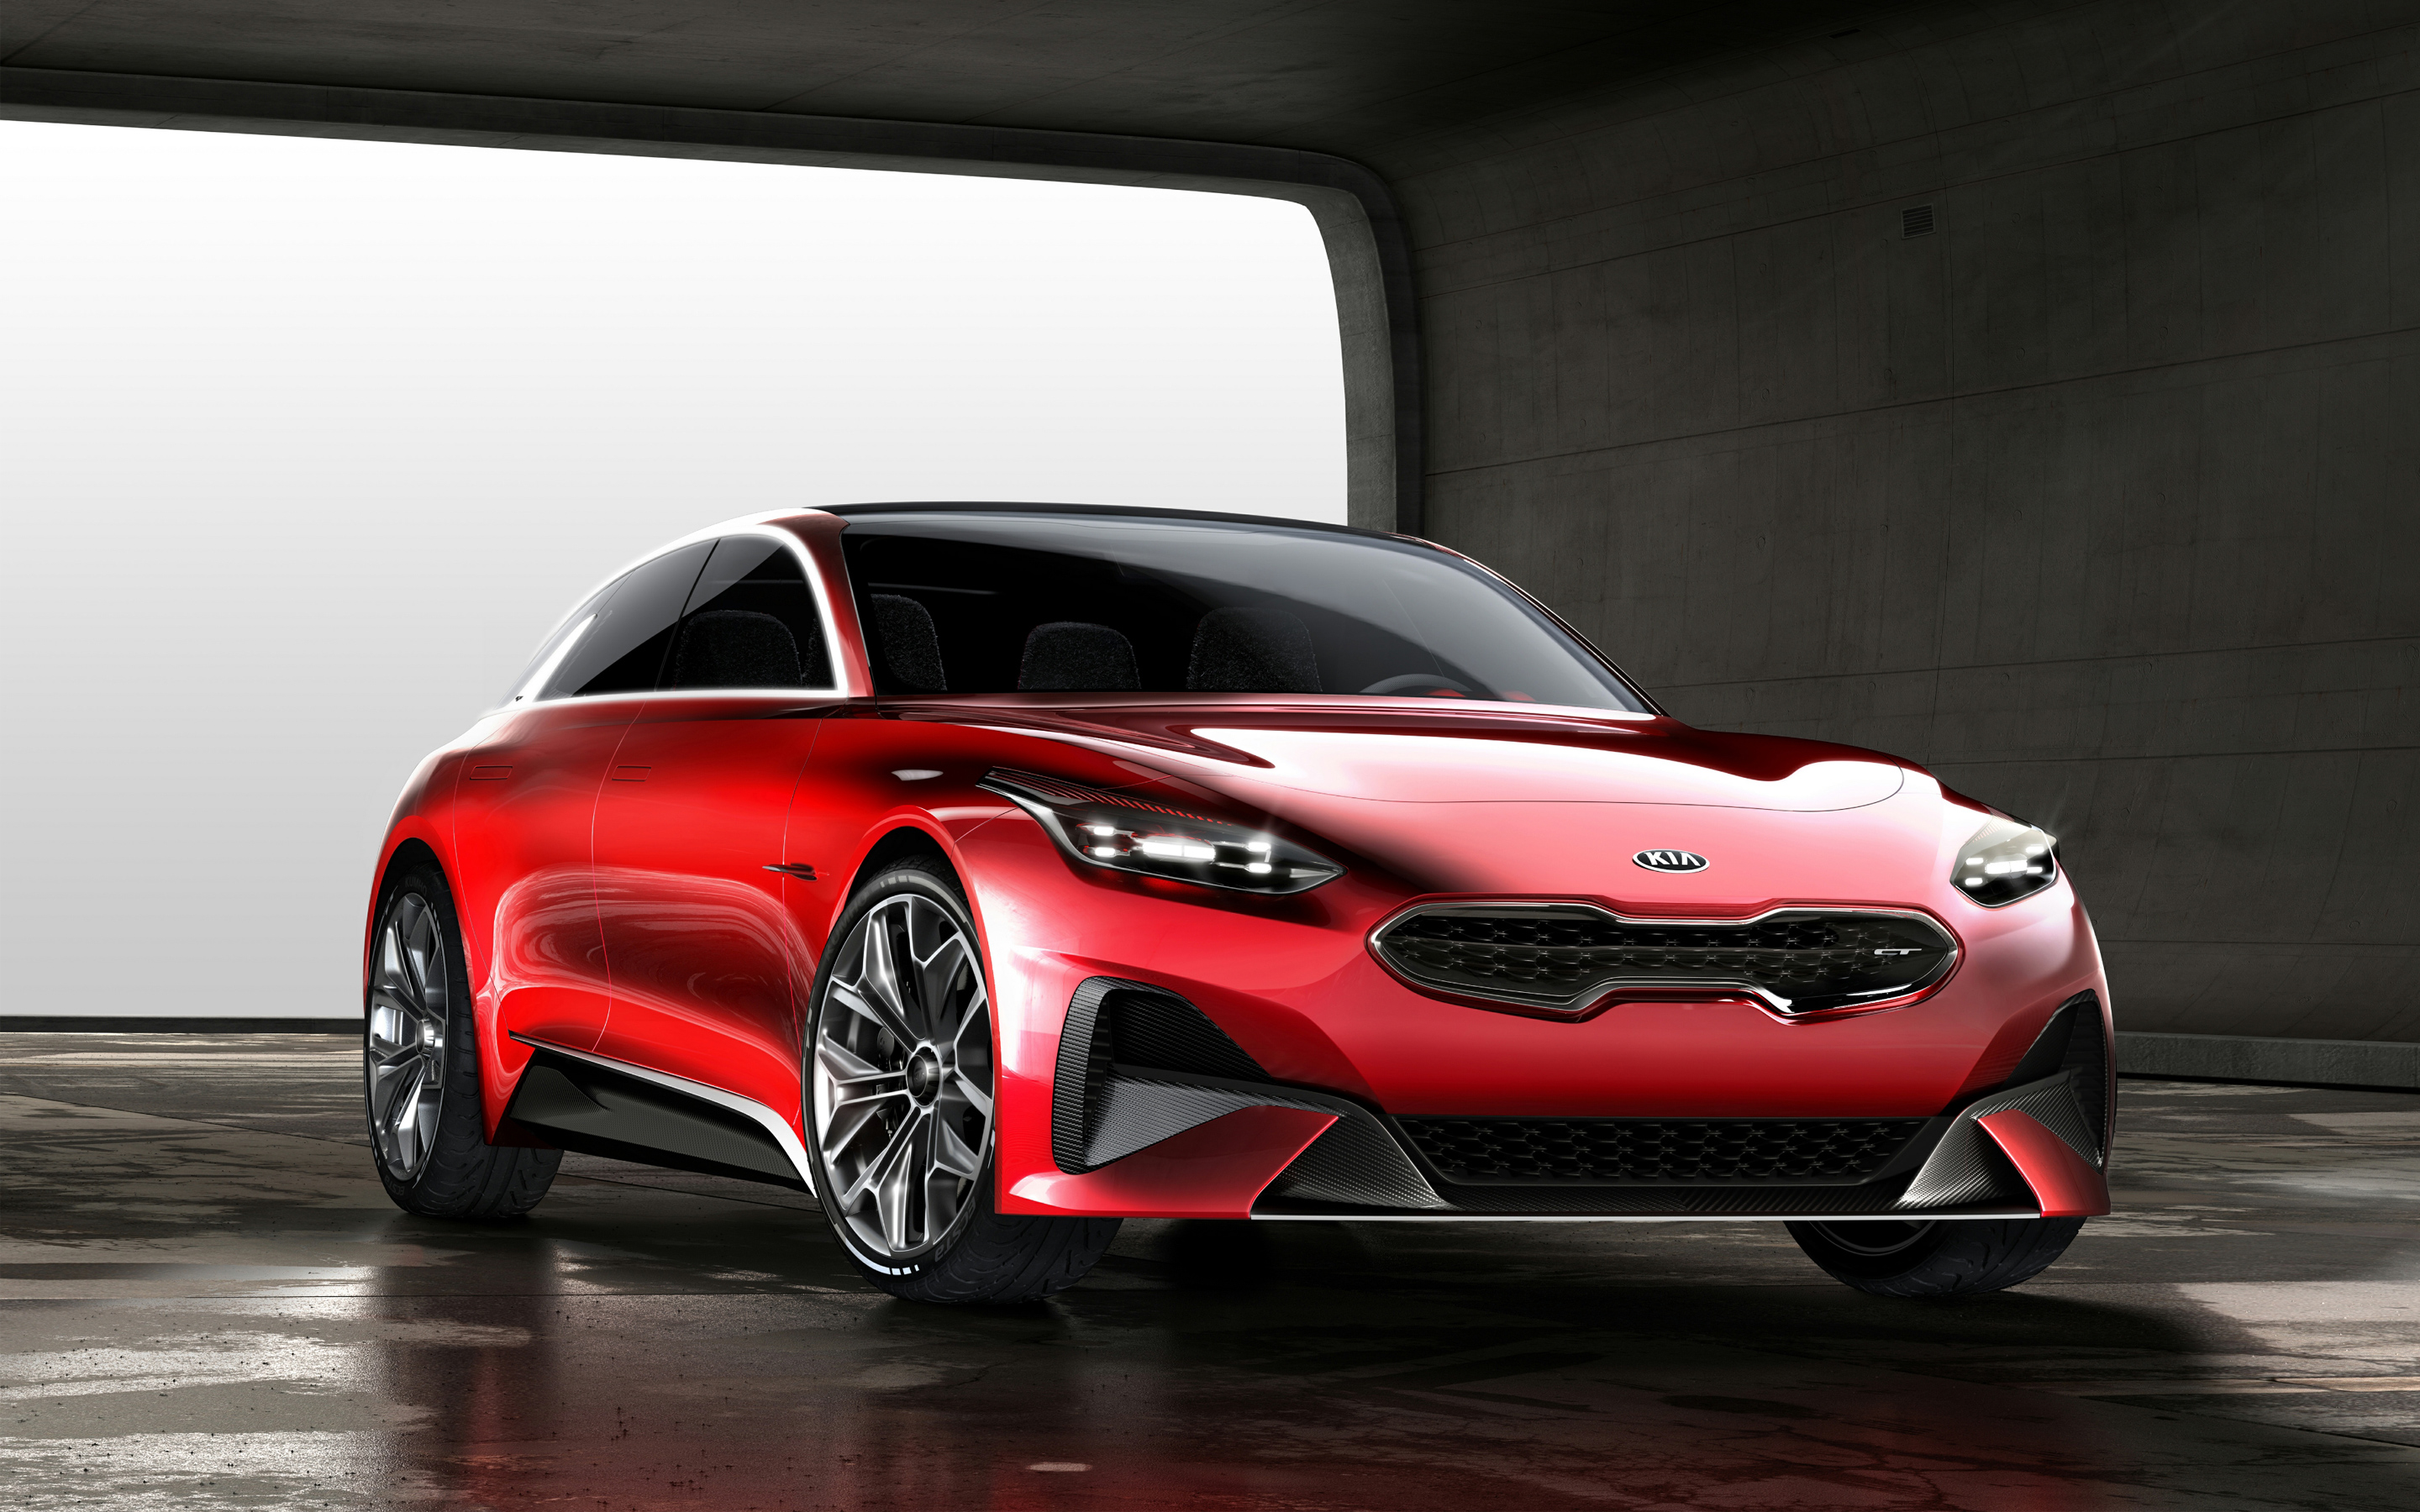 Kia Wallpapers and Background Images   stmednet 2880x1800